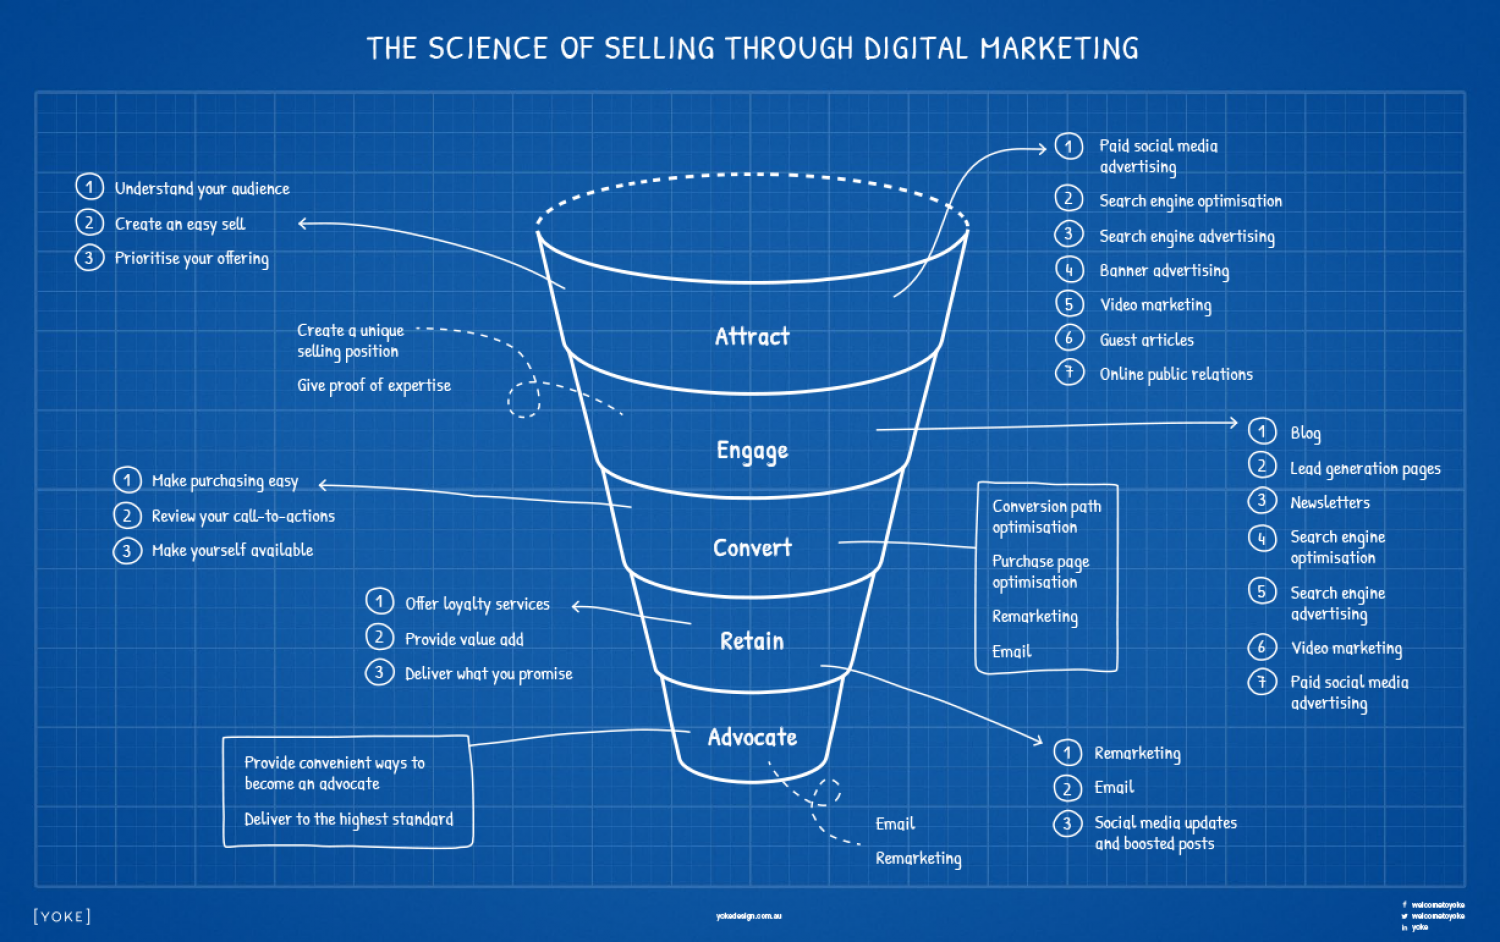 The Science of Selling through Digital Marketing Infographic